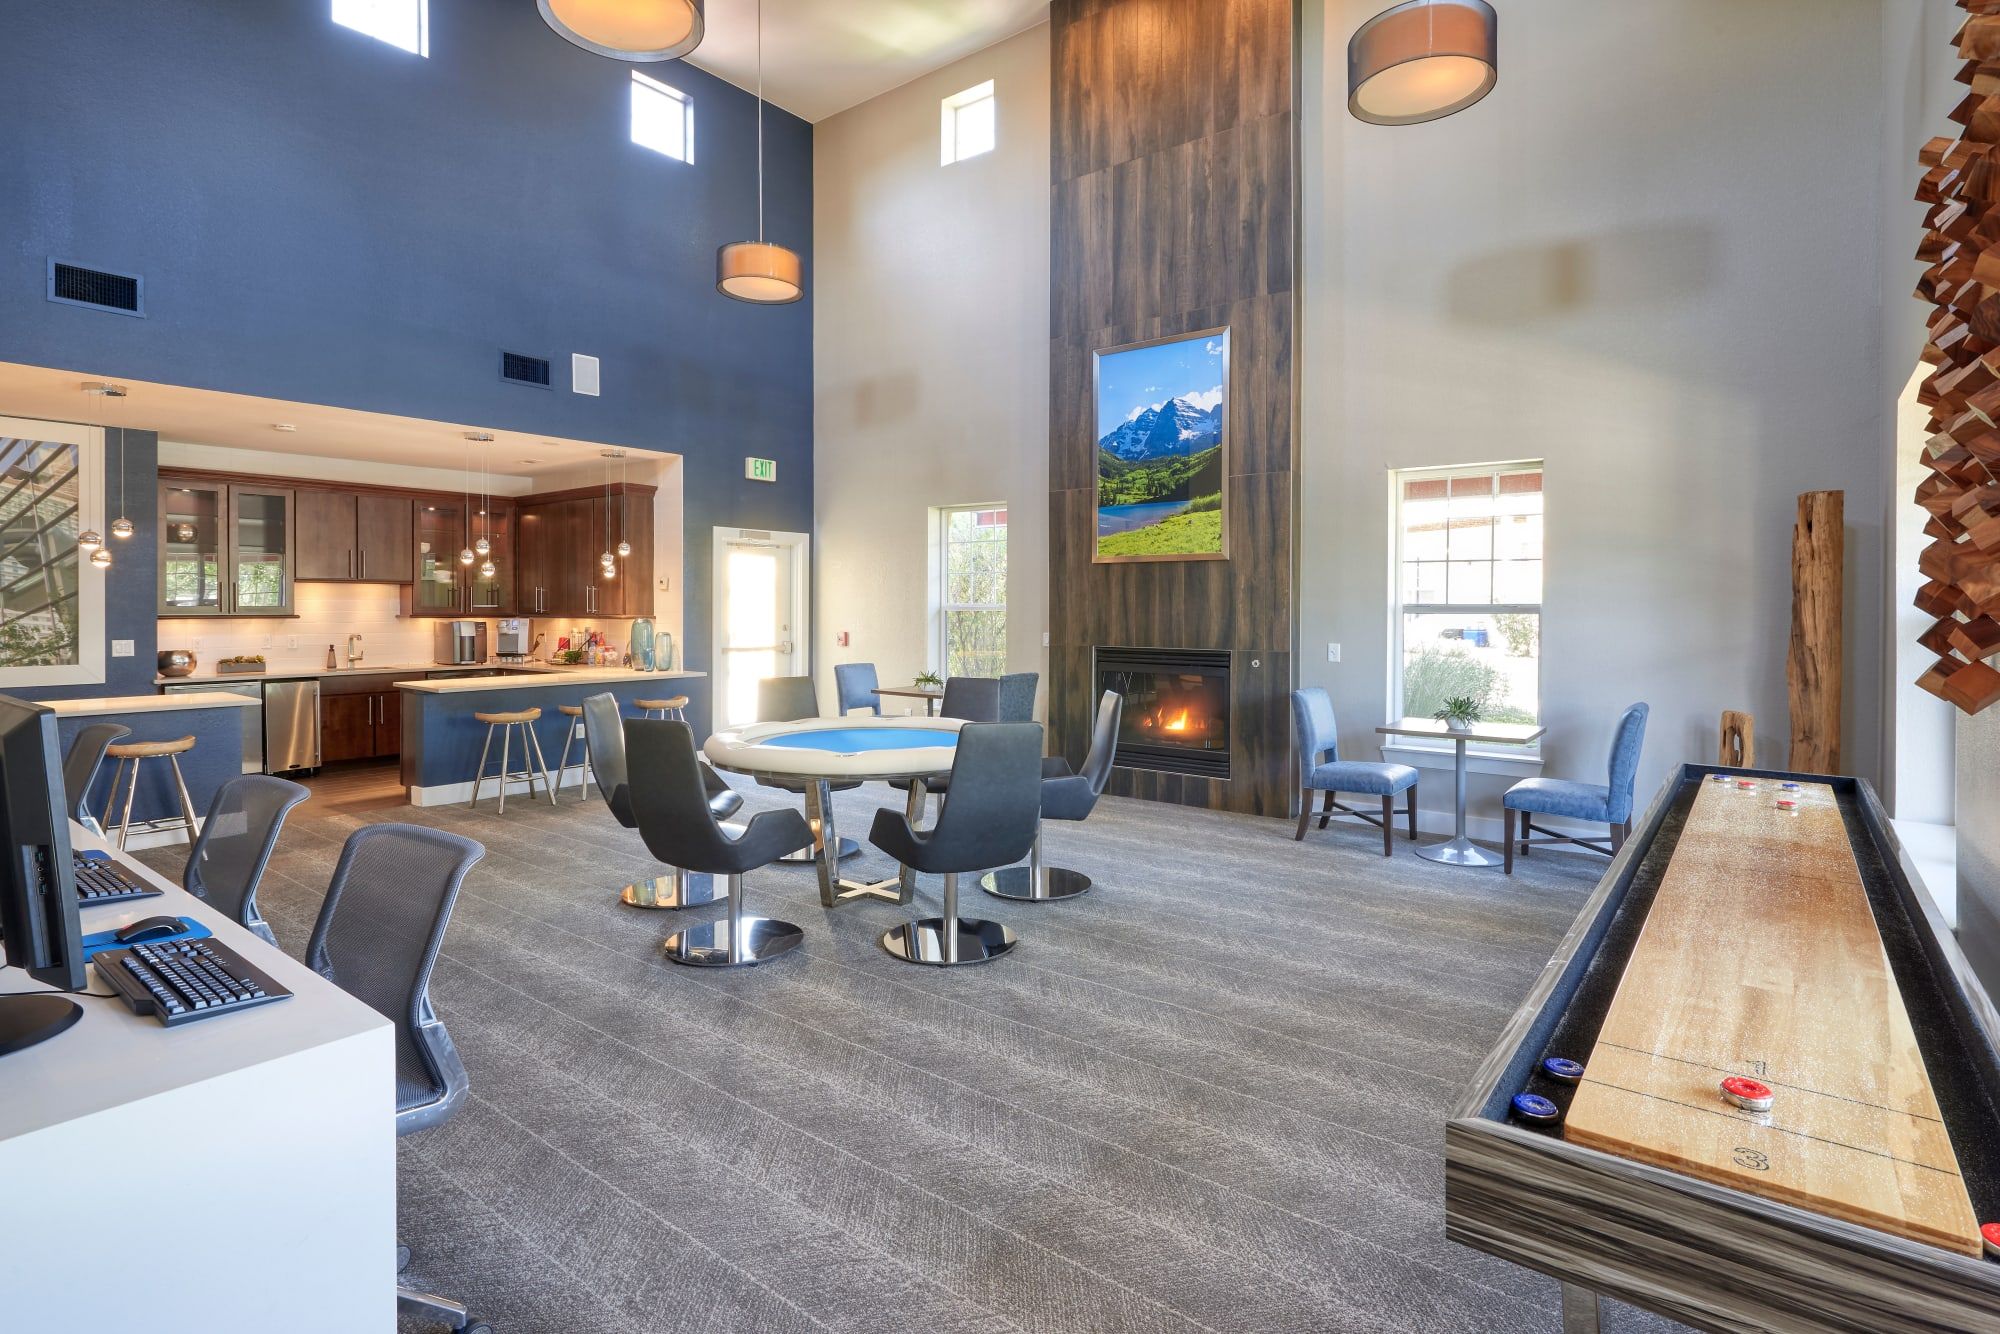 Luxury clubhouse complete with a pool table, shuffleboard, a kitchen, and a business center at Bear Valley Park in Denver, Colorado